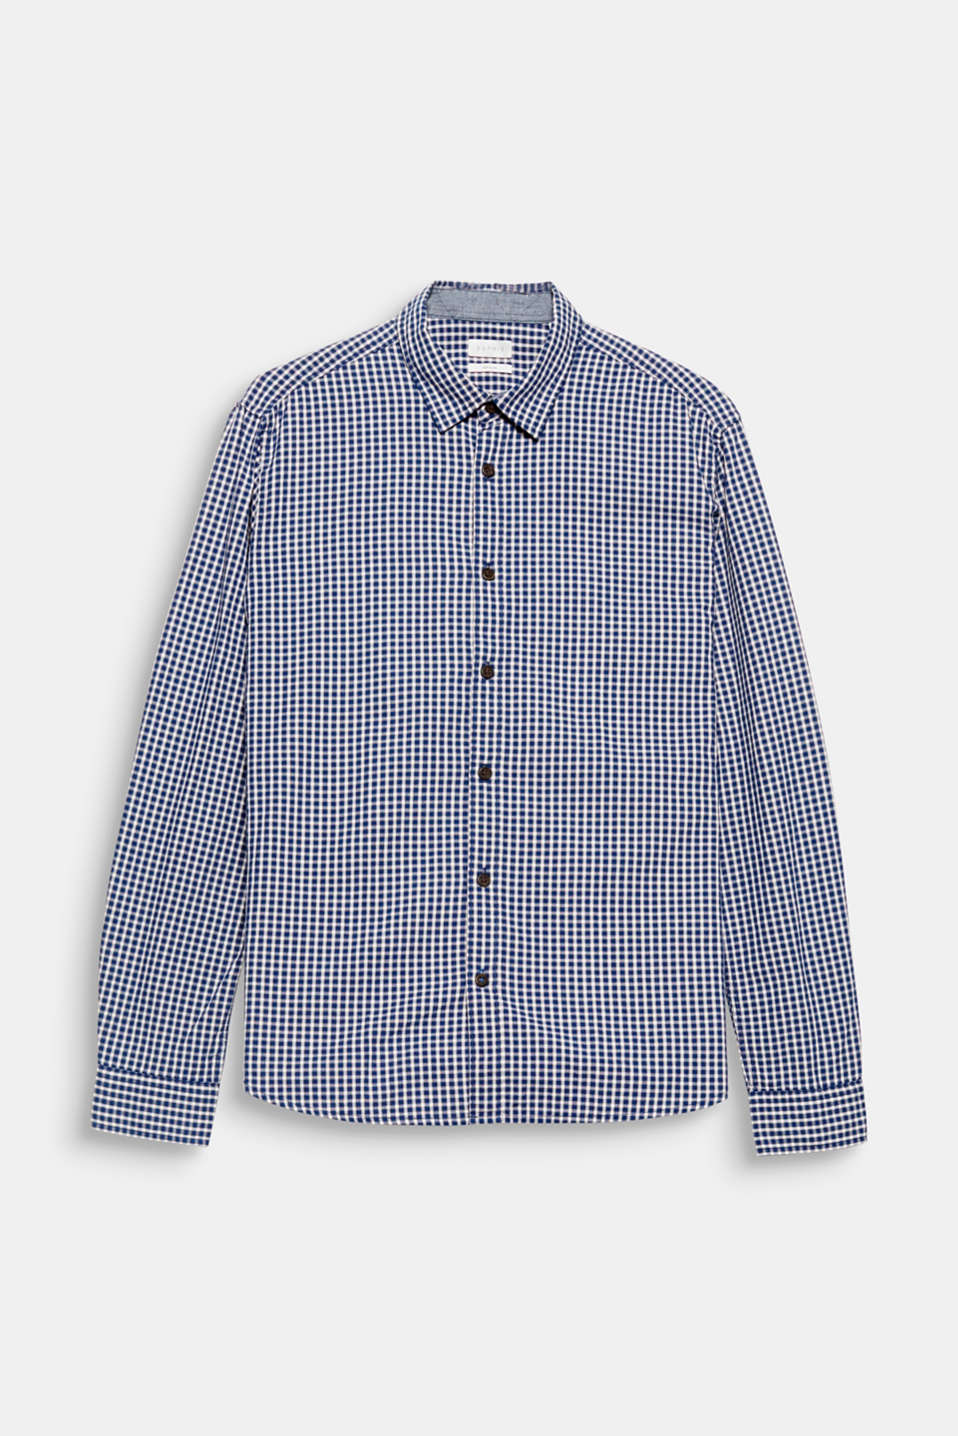 A classic: shirt with a check pattern in 100% cotton.